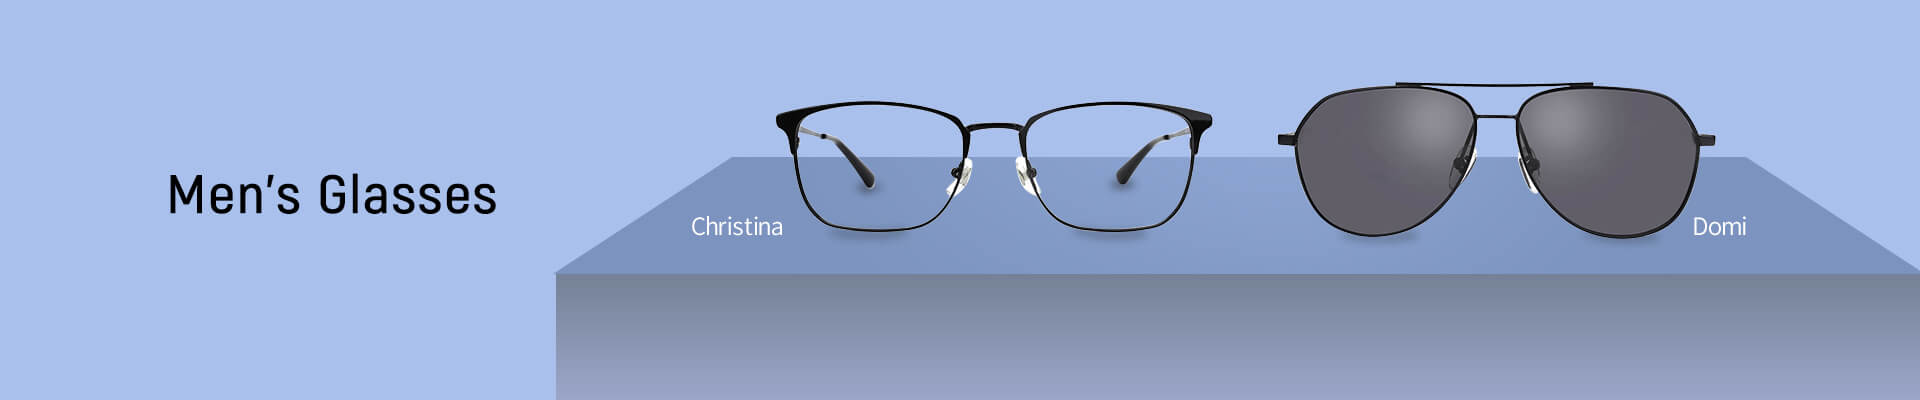 Men's glasses category